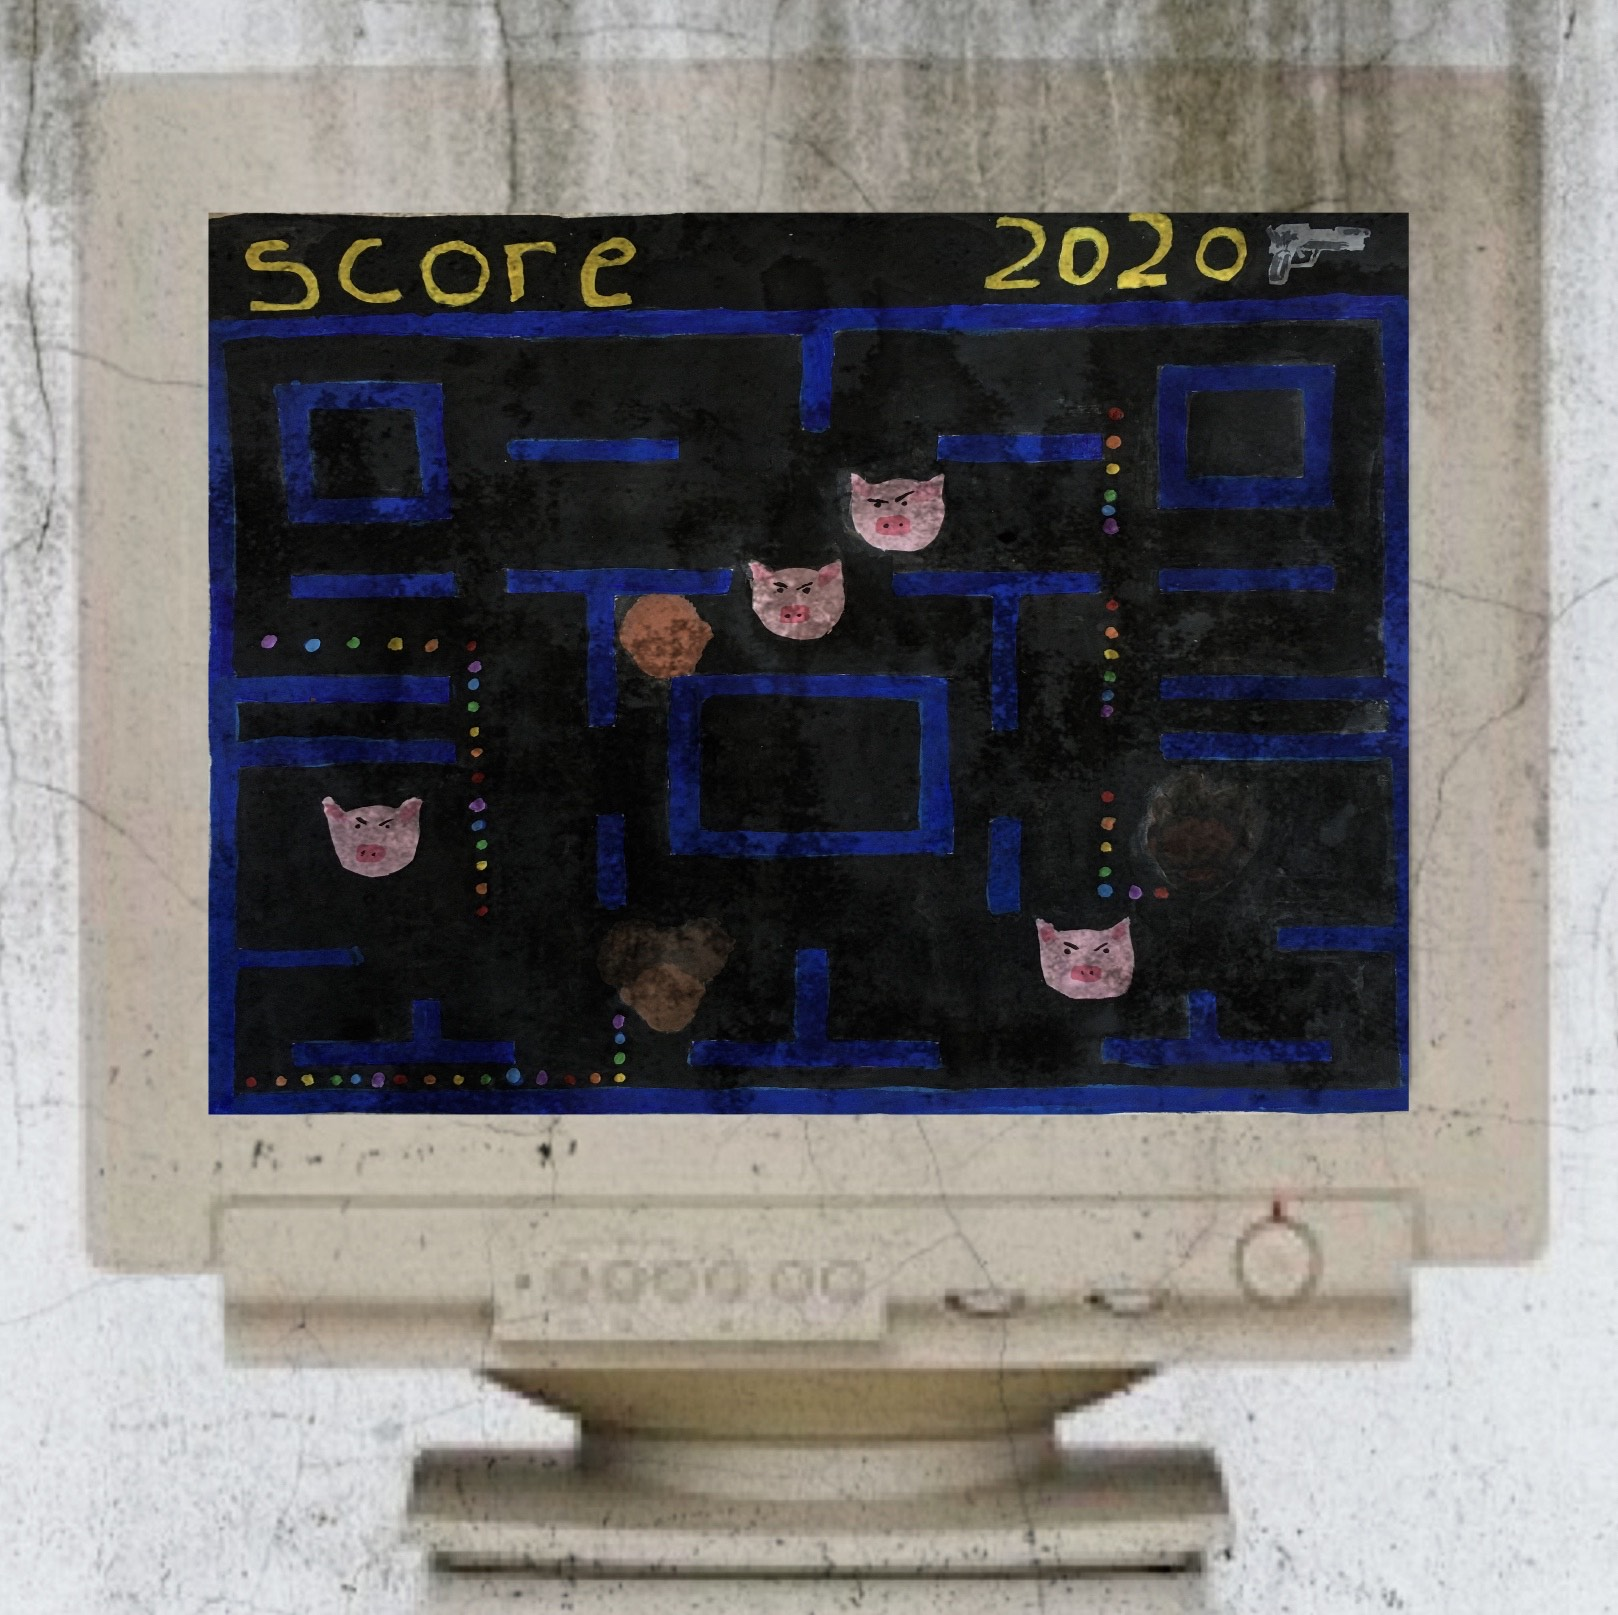 A digital illustration of an old dirty computer screen with a pac man style game on the screen.